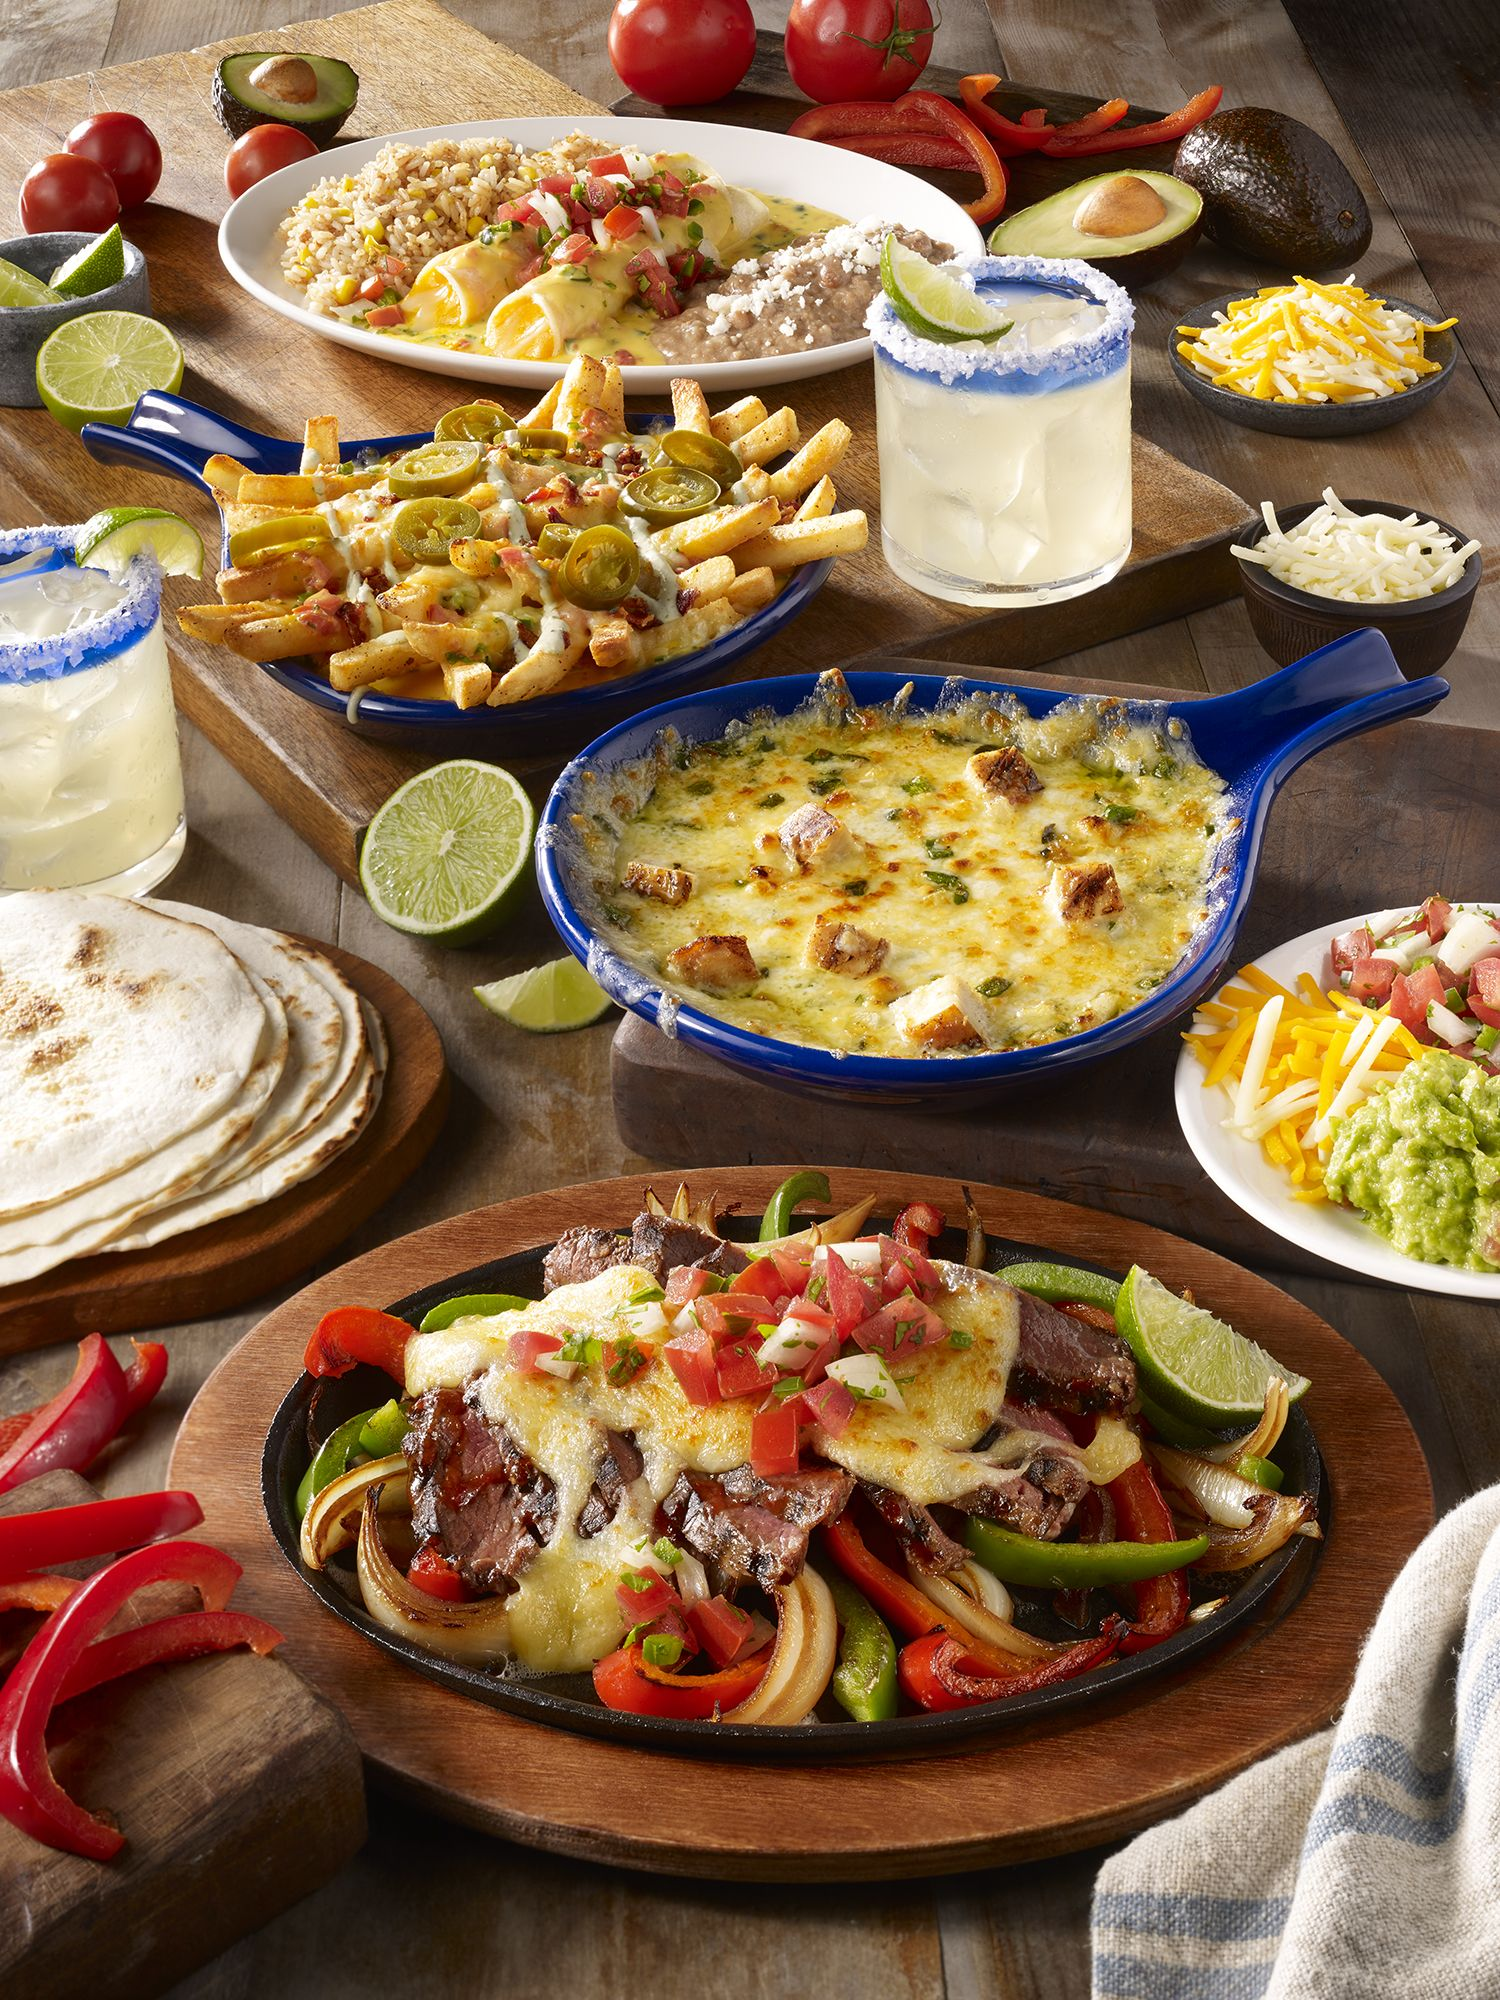 For the Love of Queso, It's Queso Fest at On The Border